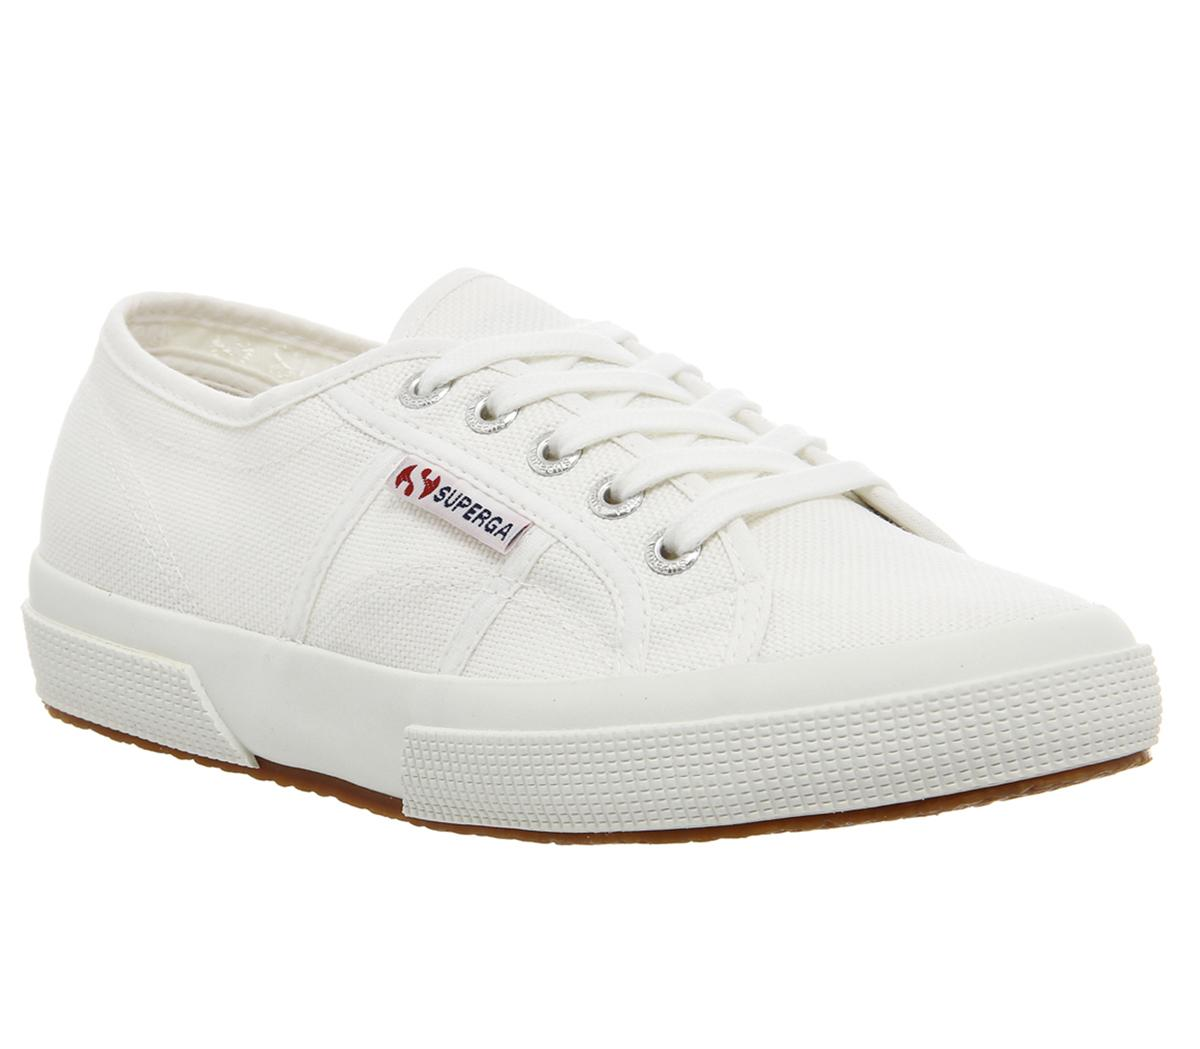 Superga 2750 Trainers White - Office Girl